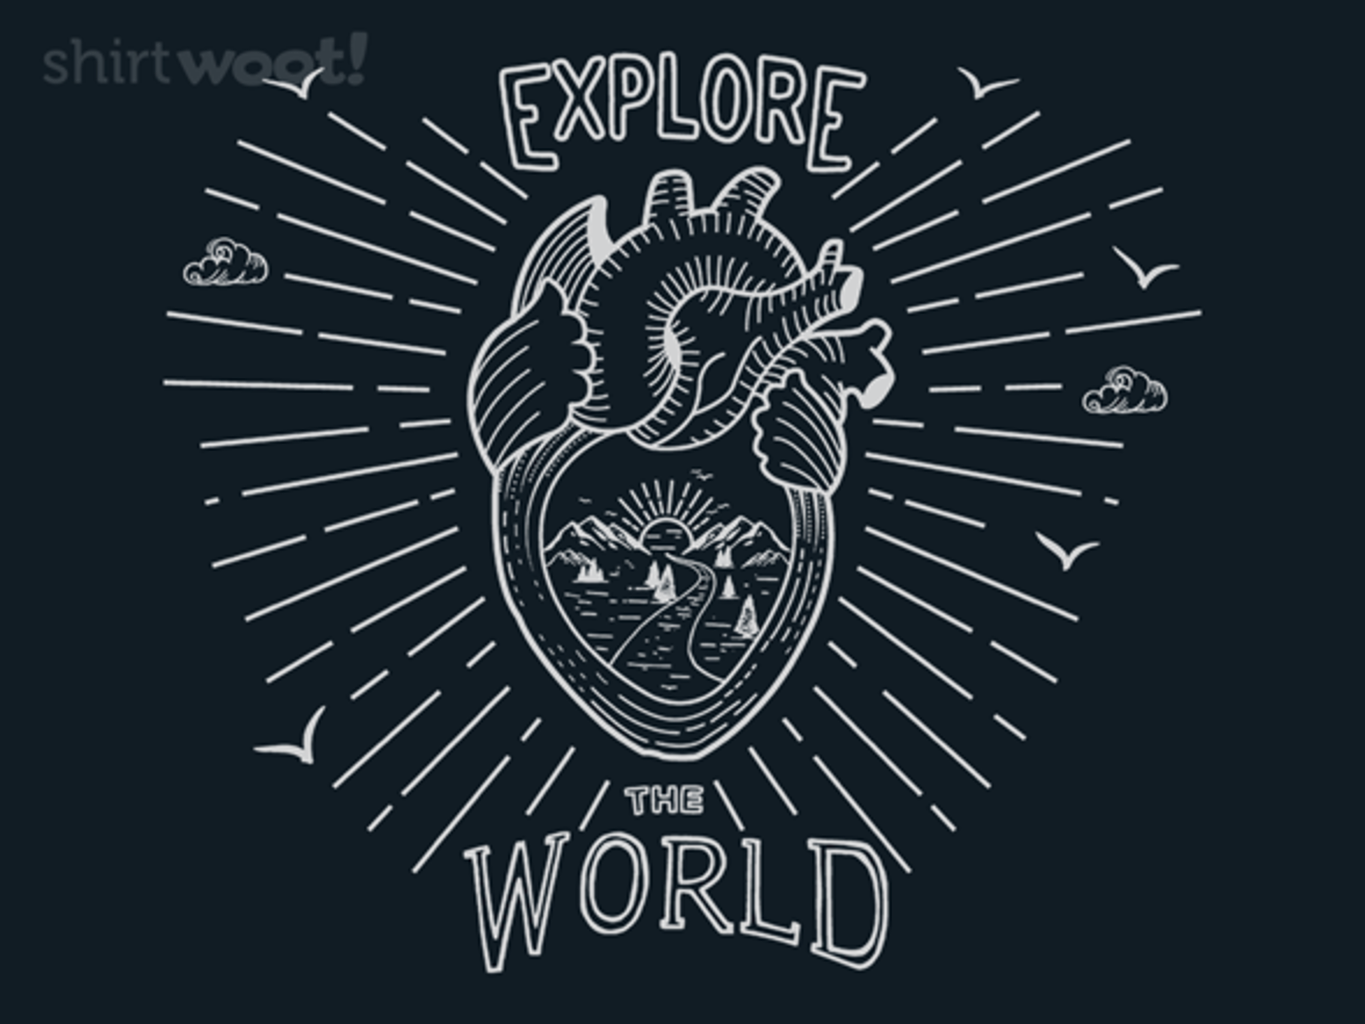 Woot!: Explore the World